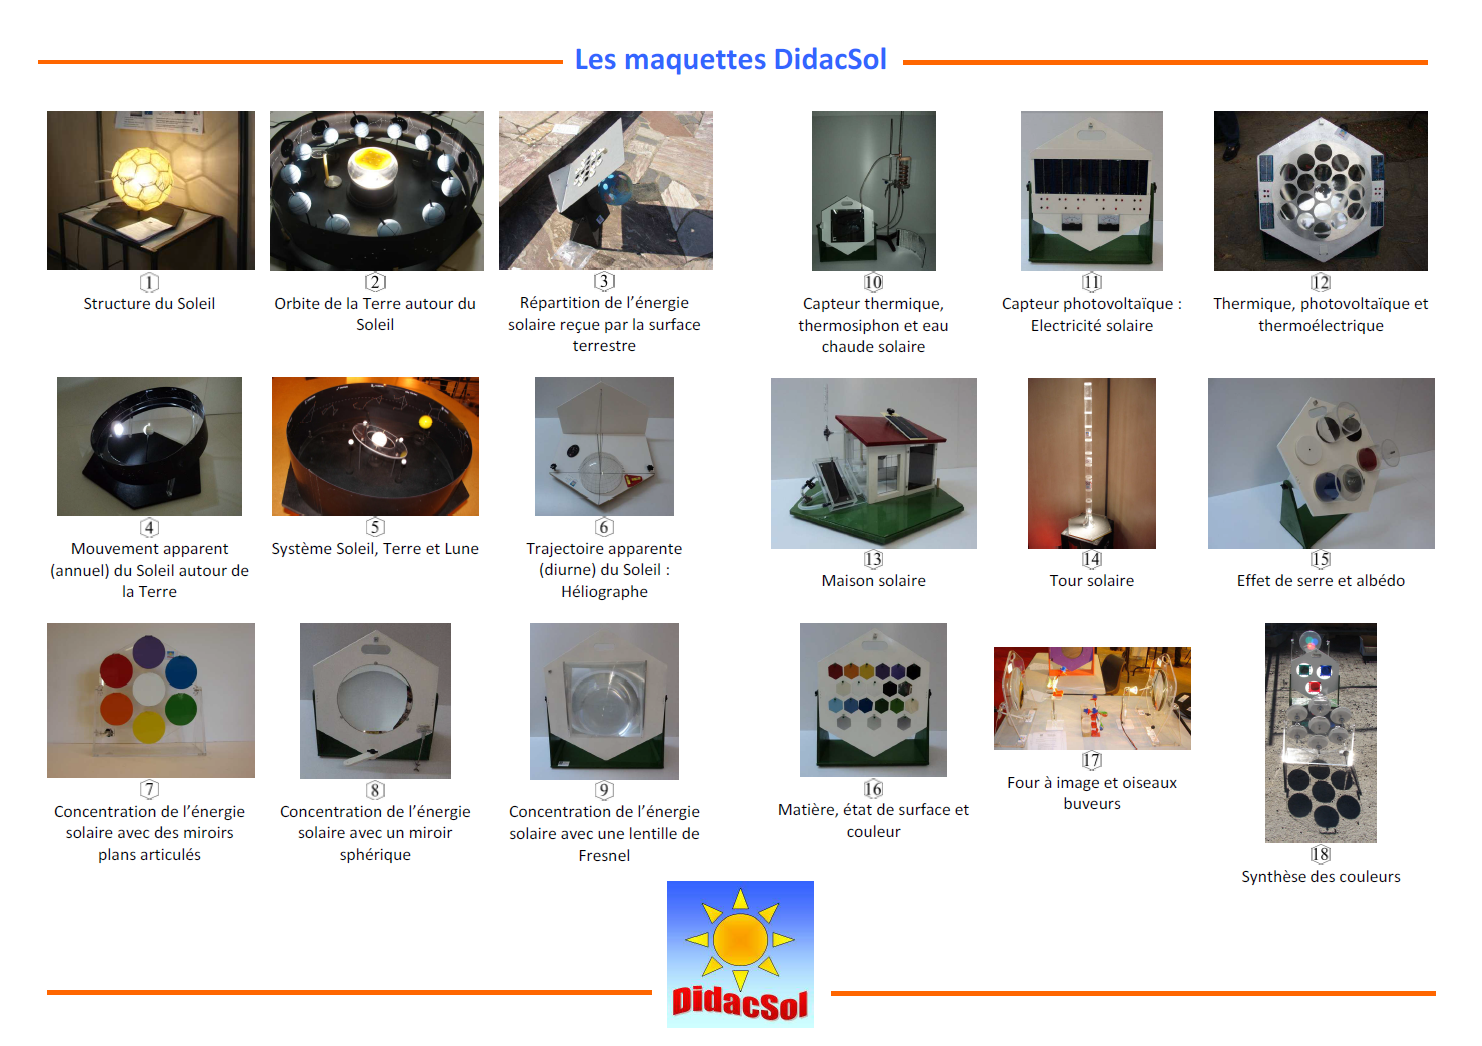 Maquettes DidacSol